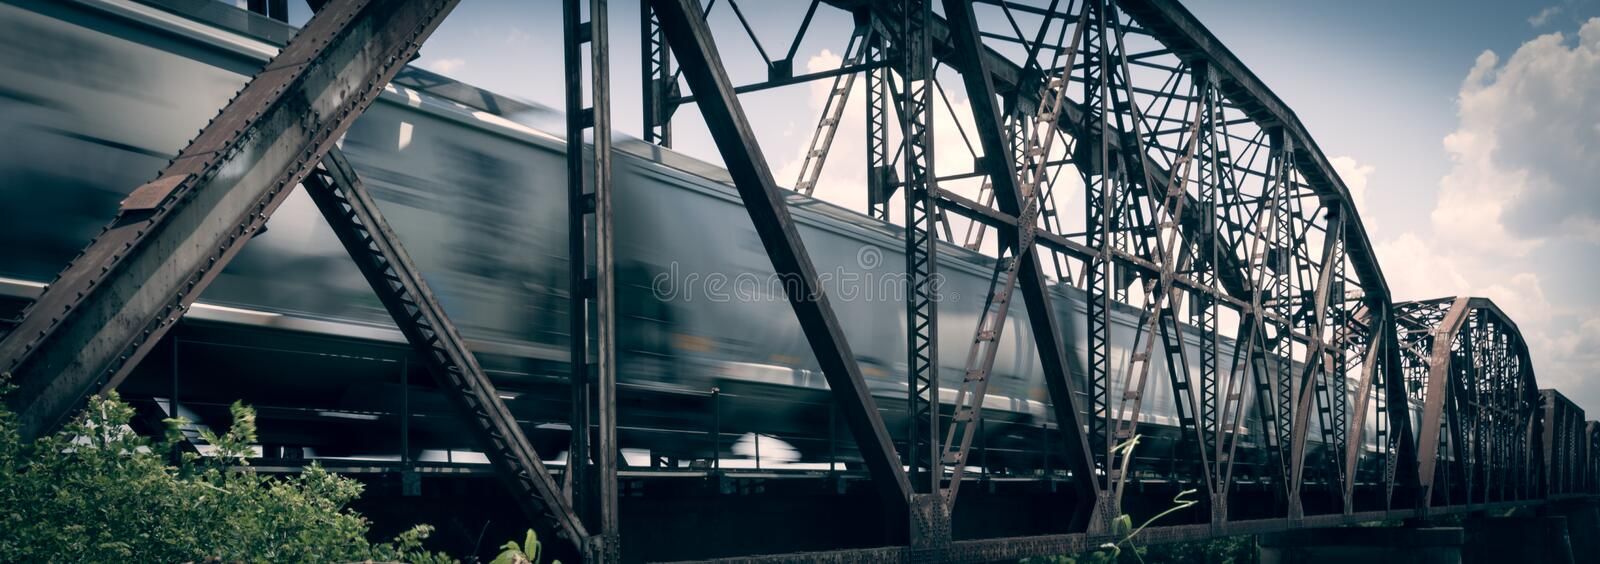 Old rusty truss bridge with moving freight train over the Red Ri royalty free stock photography